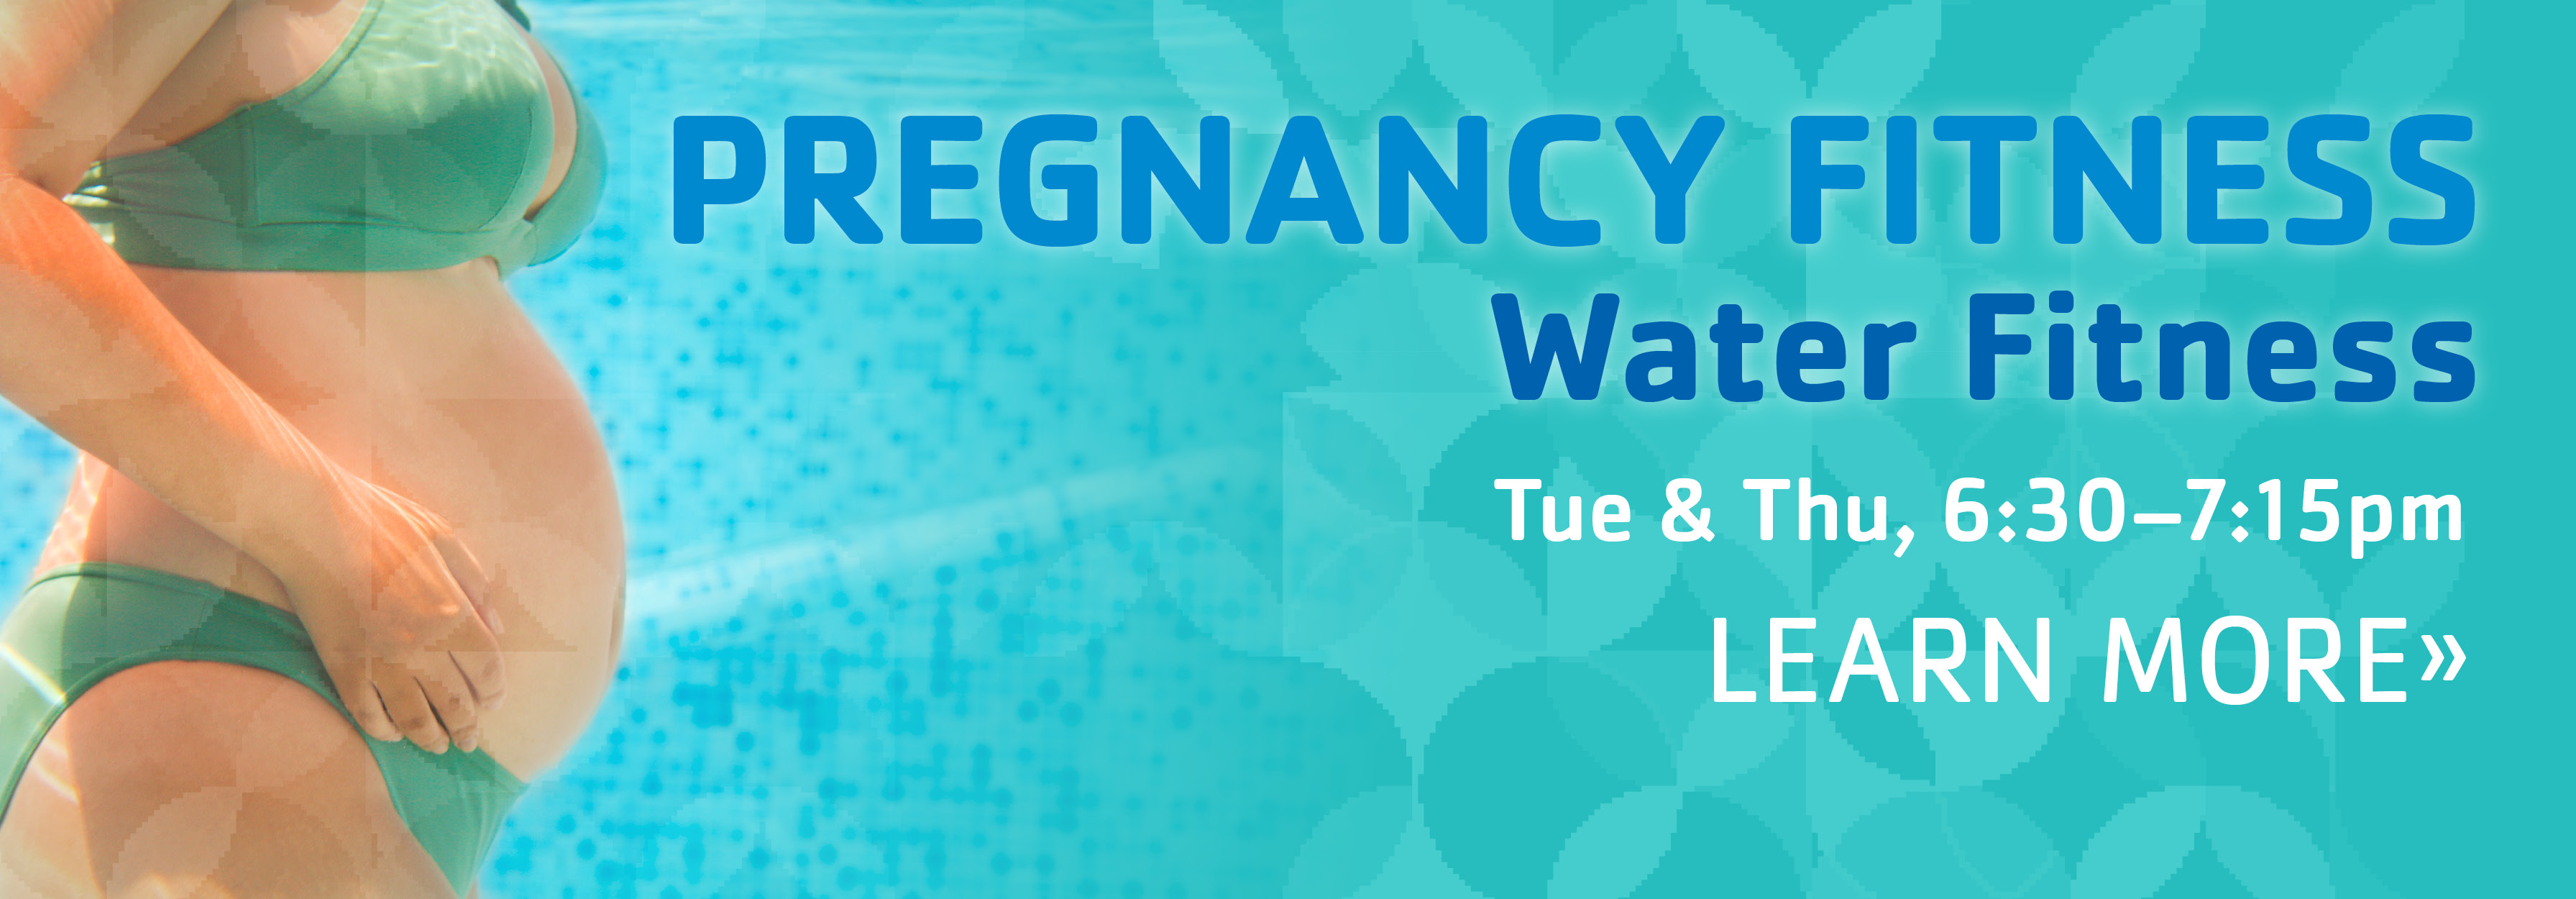 Pregnancy Fitness Water Fitness